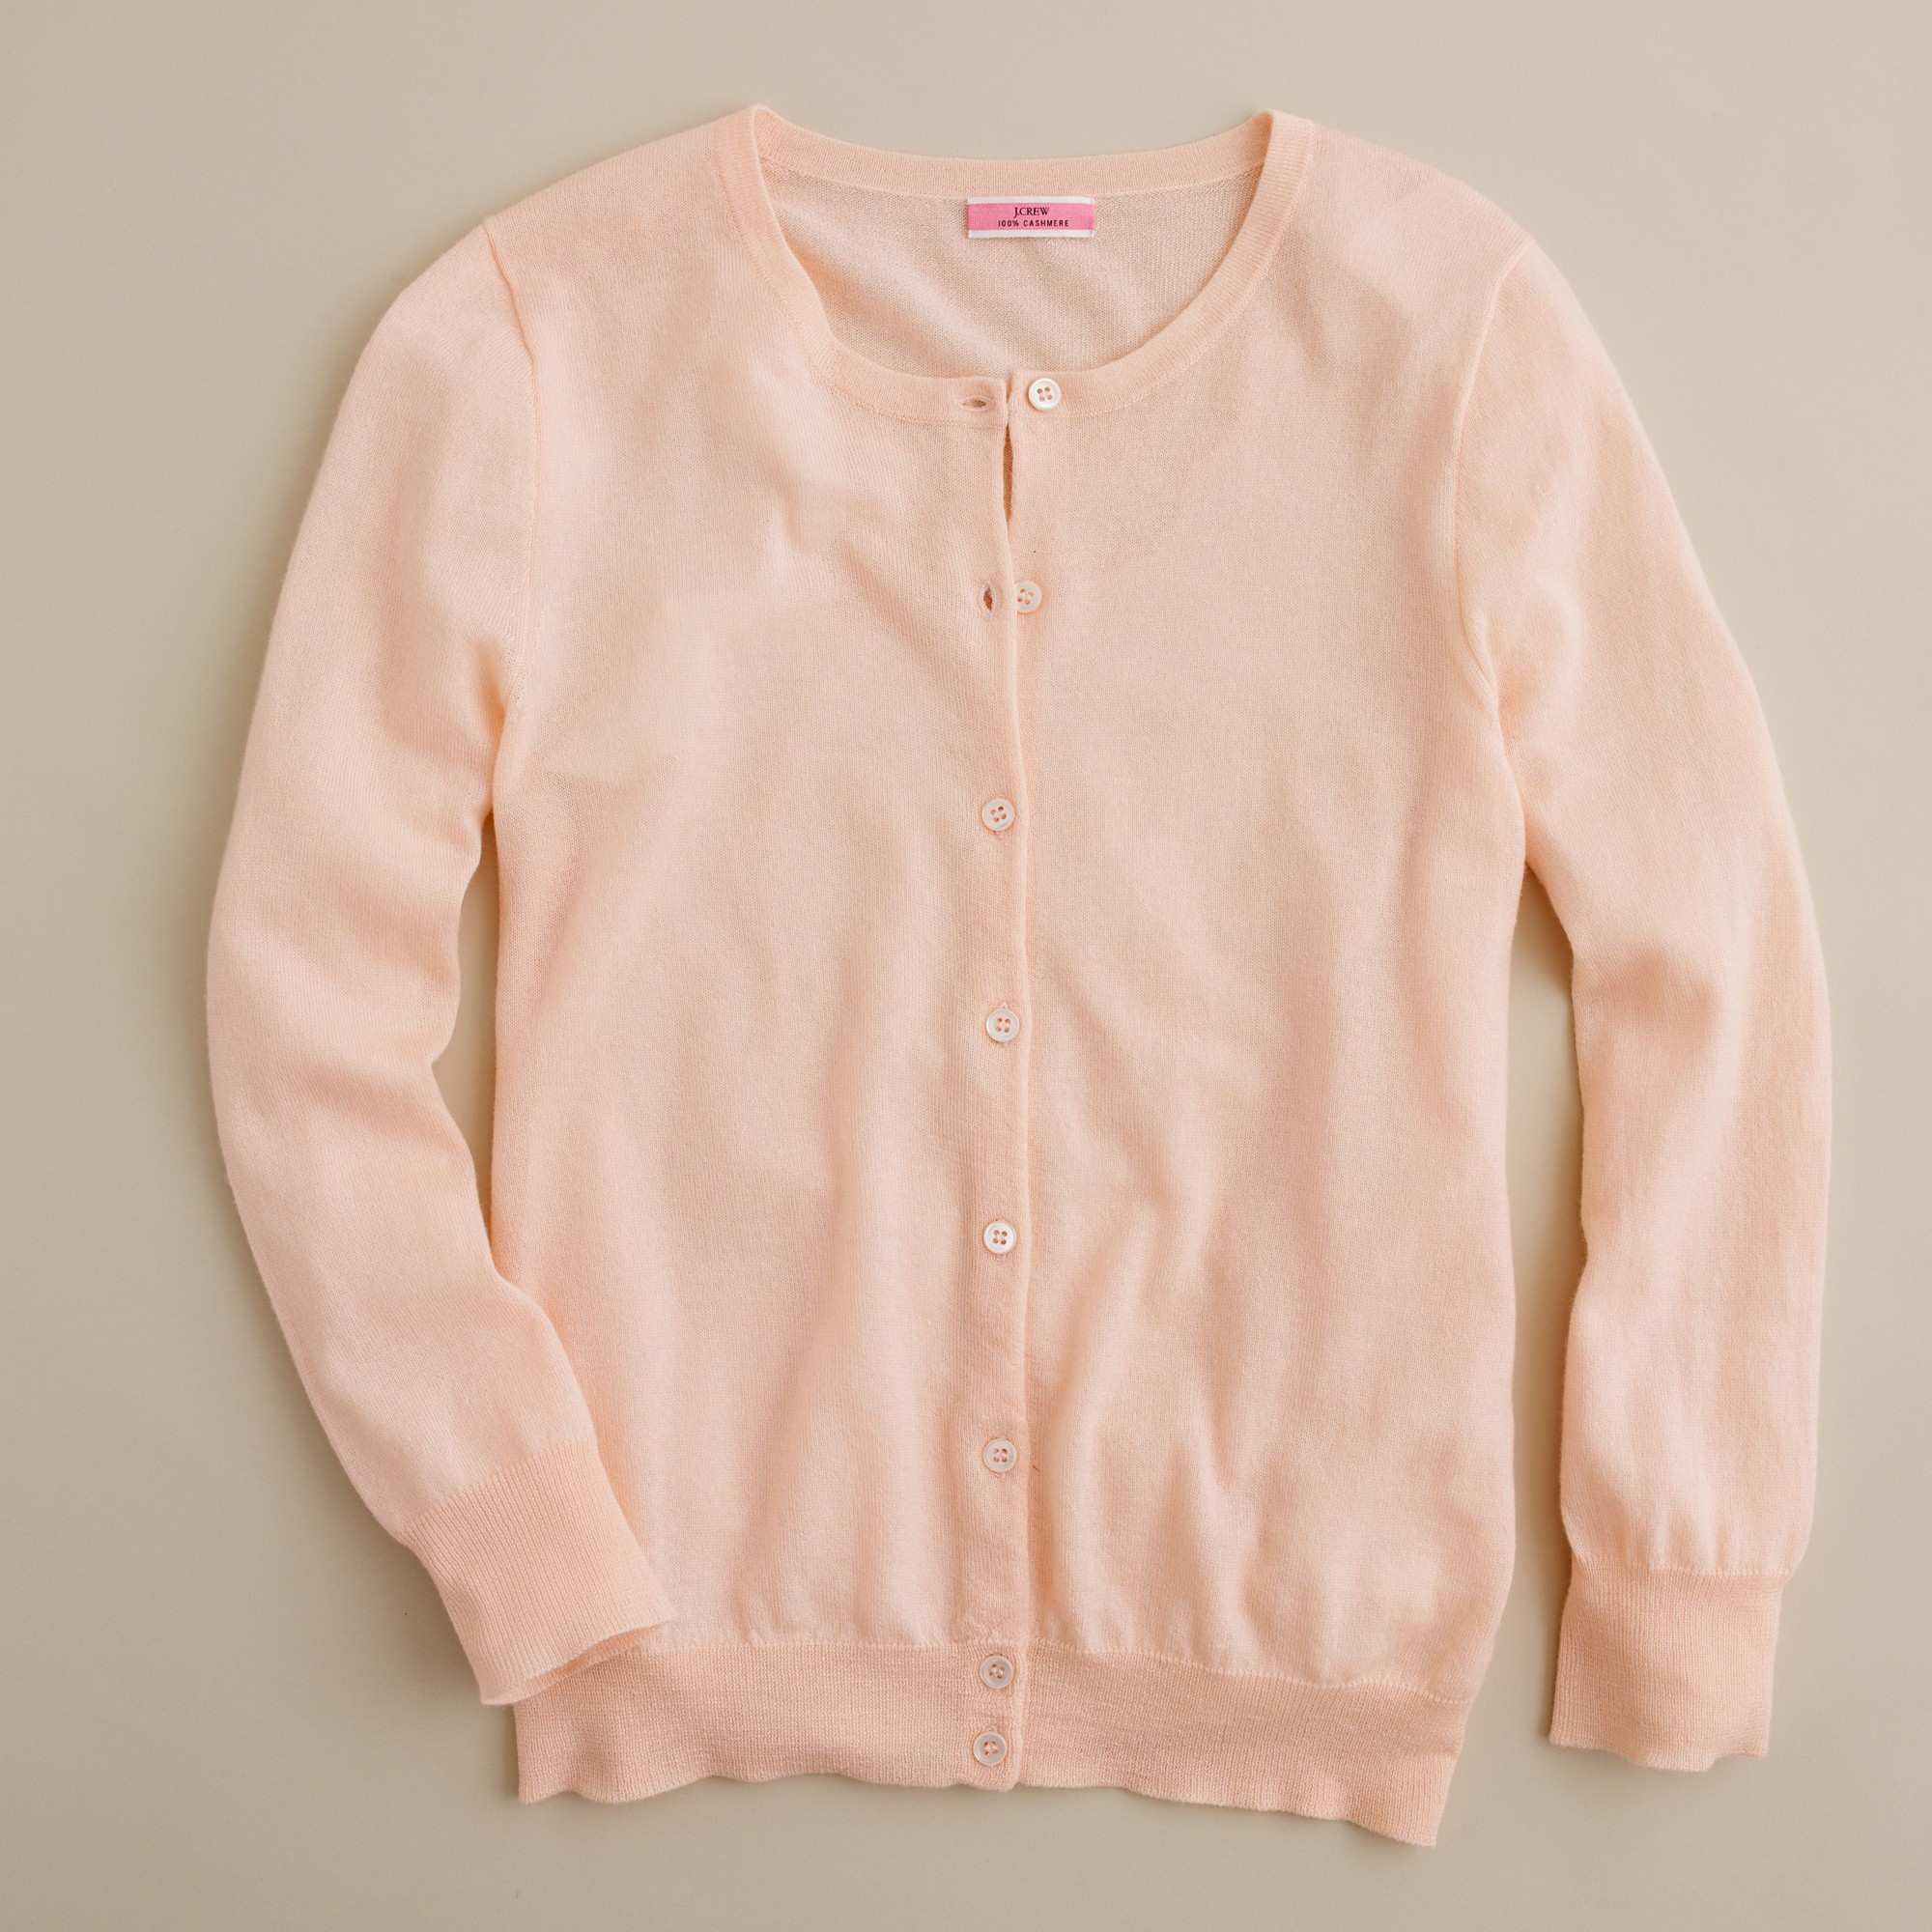 J.crew Featherweight Cashmere Cardigan in Pink | Lyst